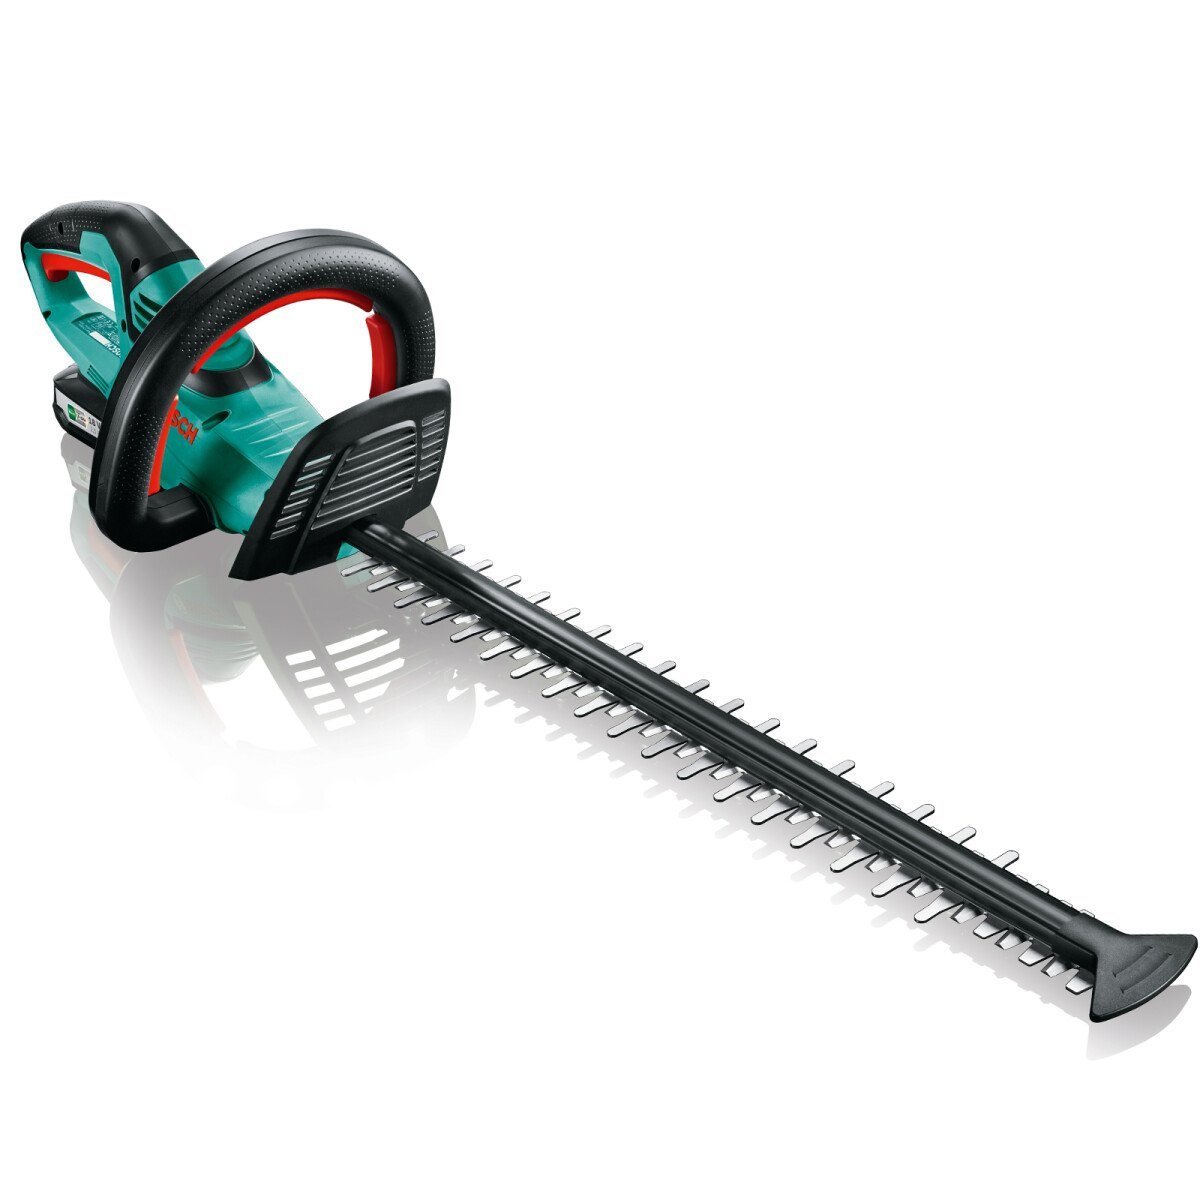 Bosch AHS 50-20 LI 18V 50cm Hedge Cutter with 1x 2.5Ah Battery